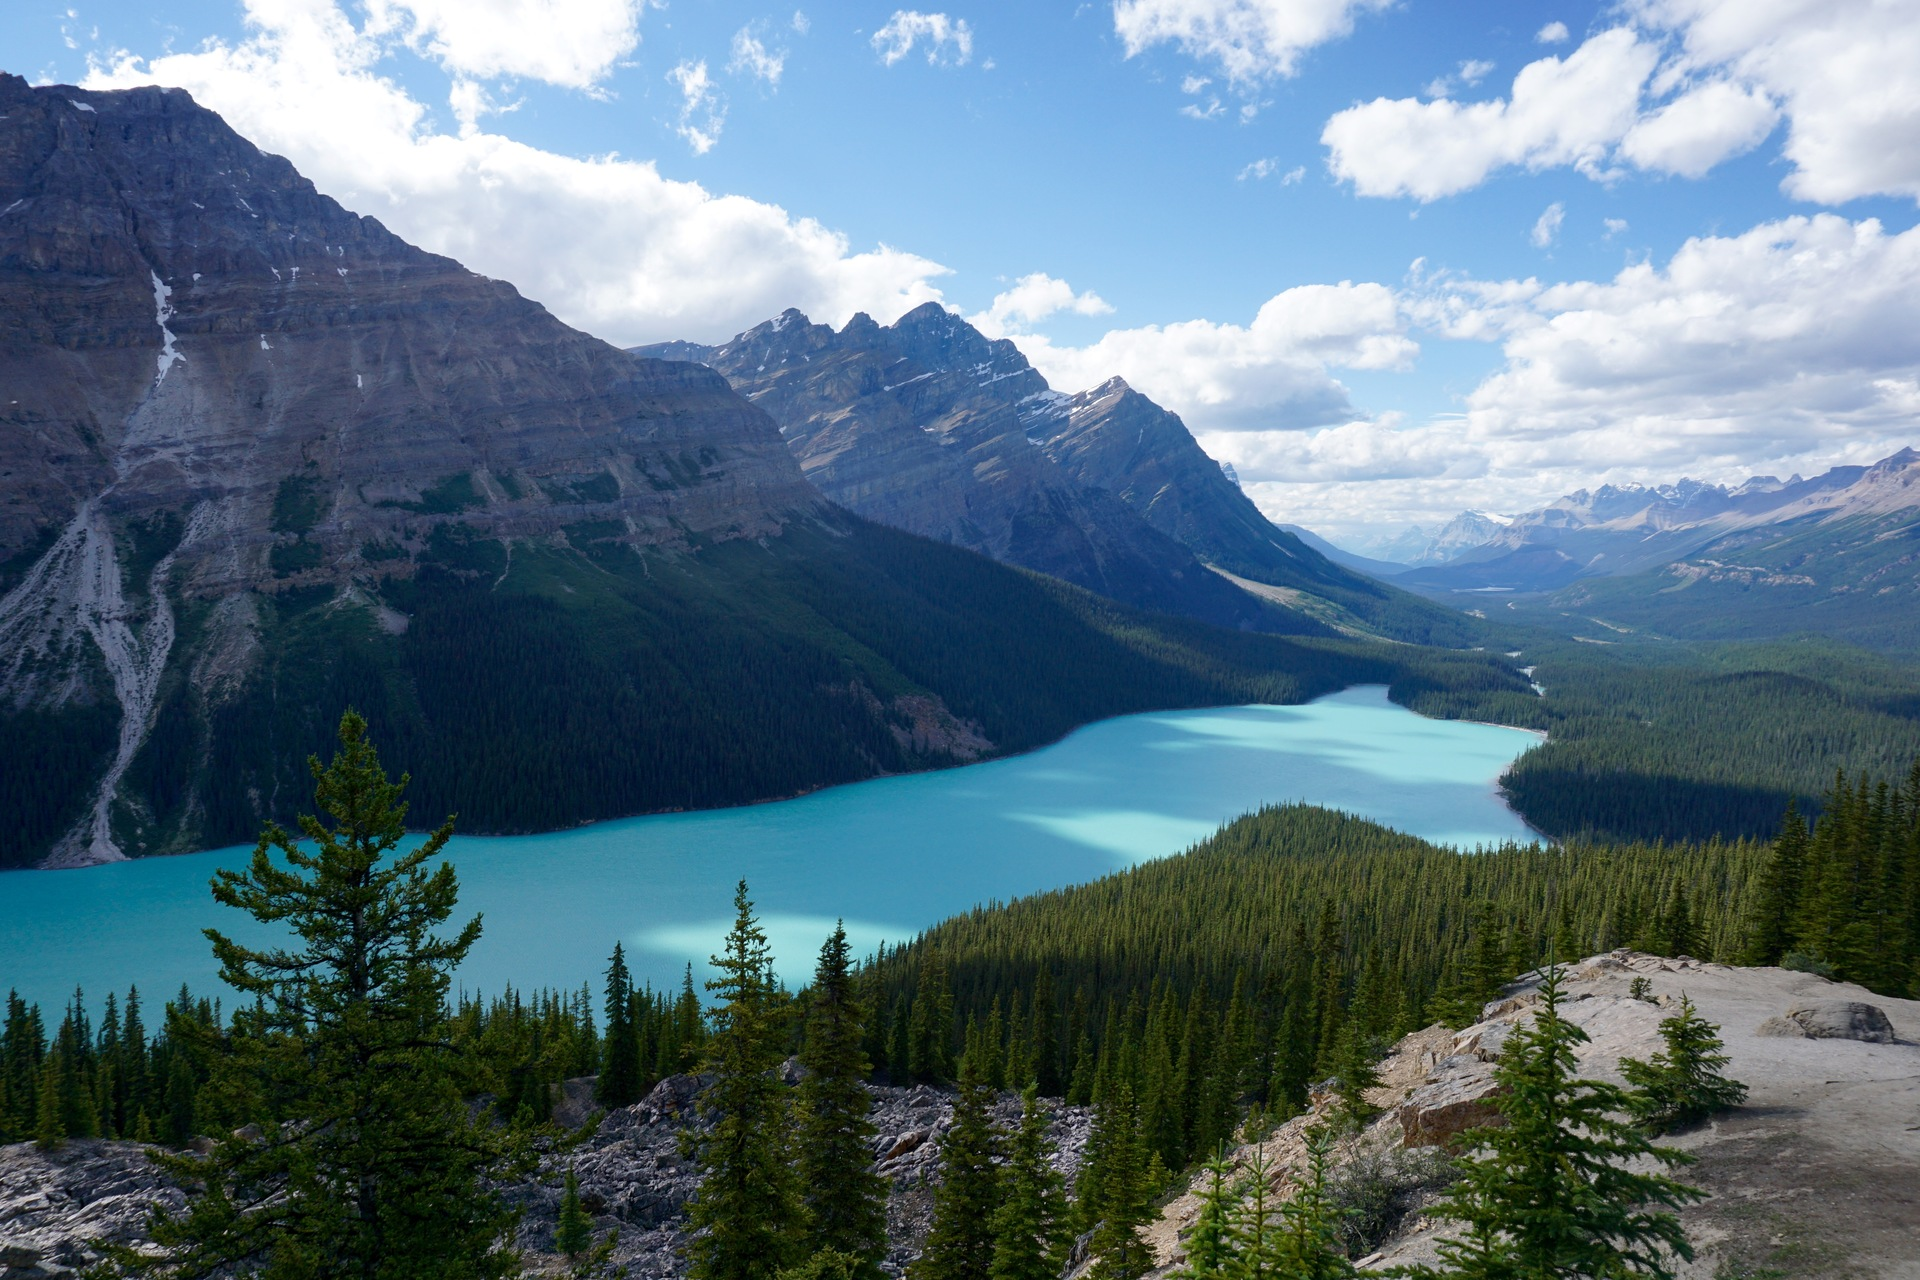 Peyto Lake is so beautiful and it is also extra special as it is in the shape of a wolf ...